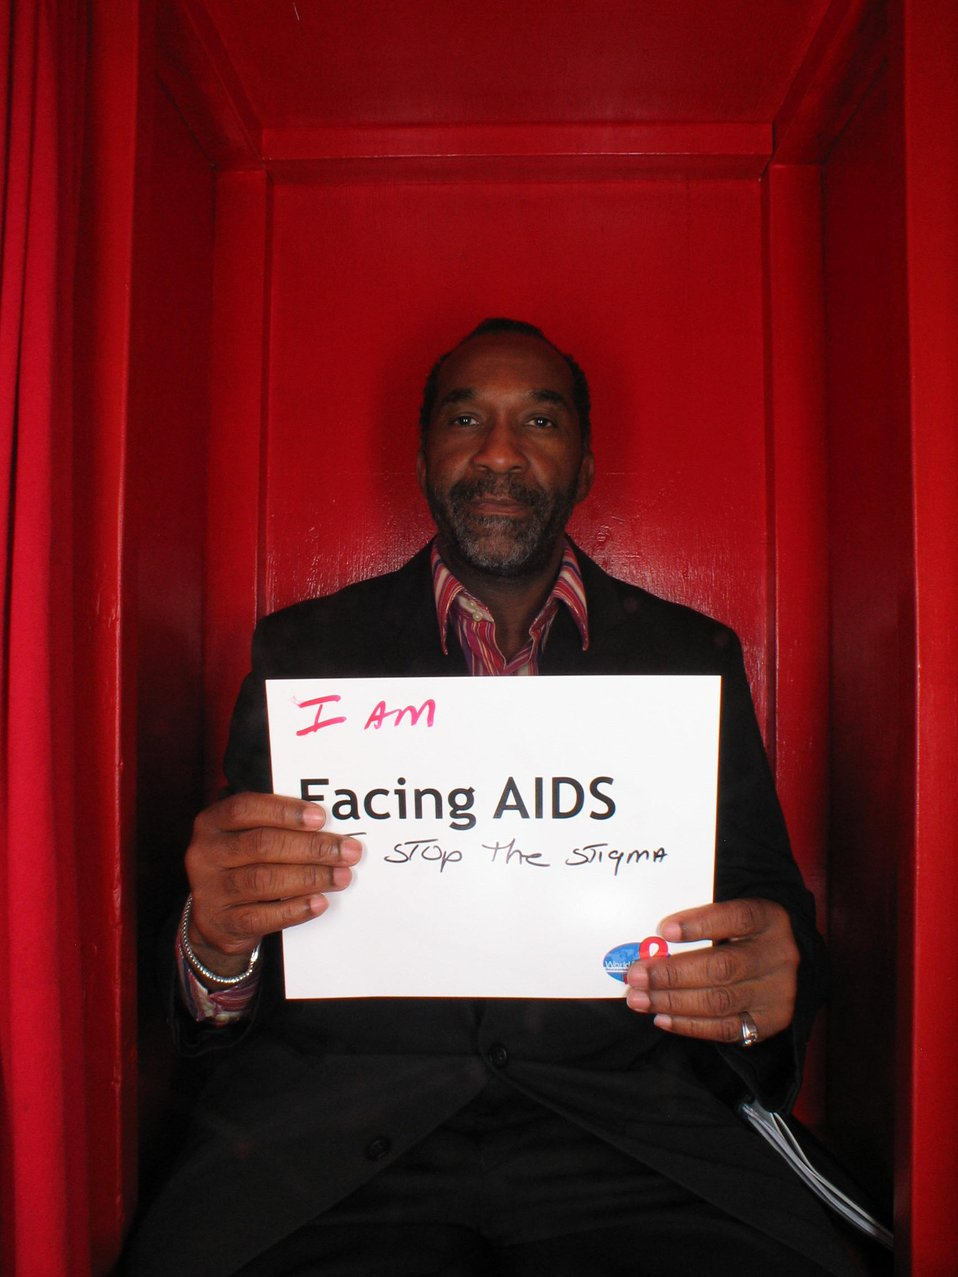 I am Facing AIDS to stop the stigma